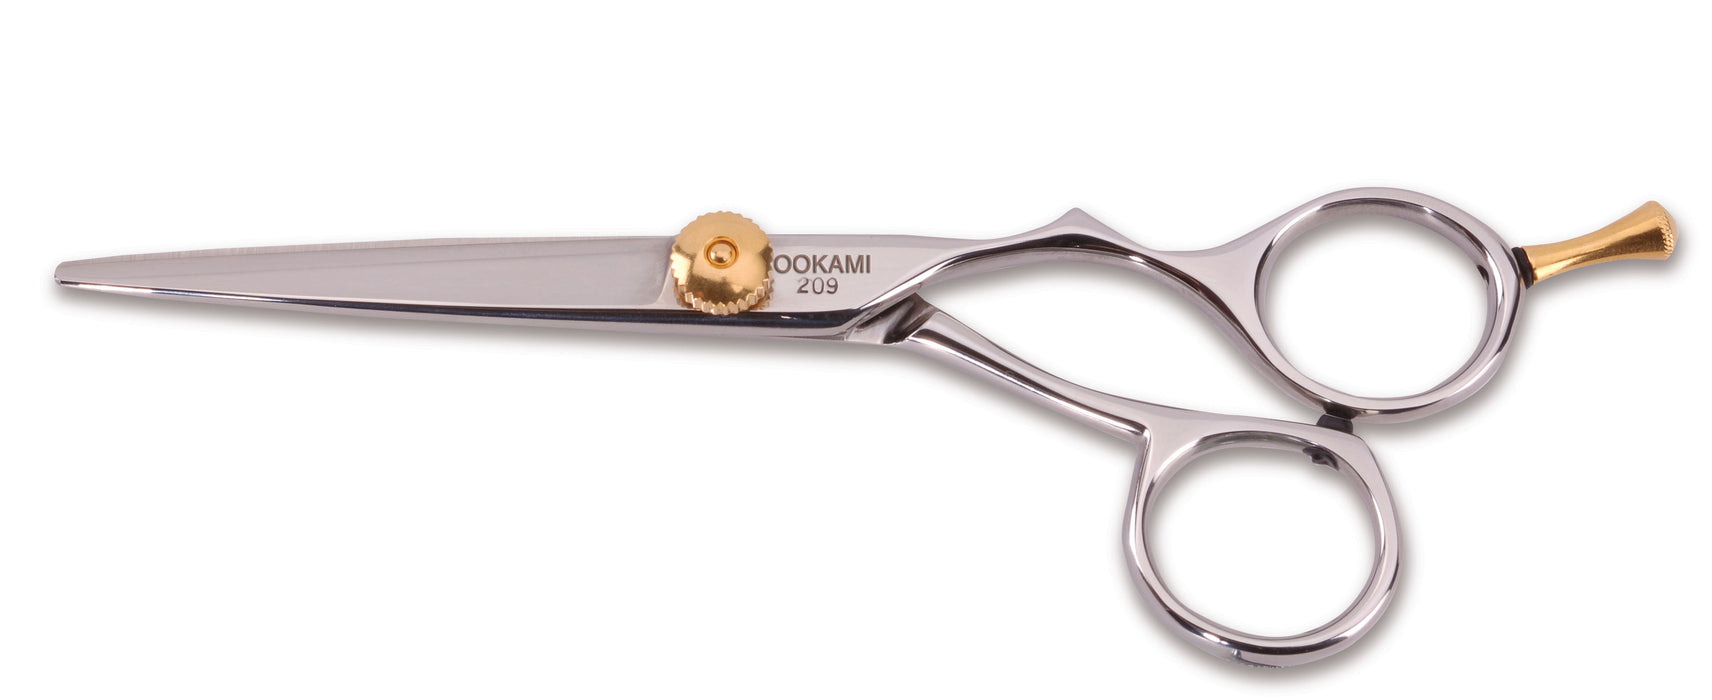 "Ookami Gold® 5"" Offset Inline Easy Grip Handle Beauty Shear with Tension Knob"